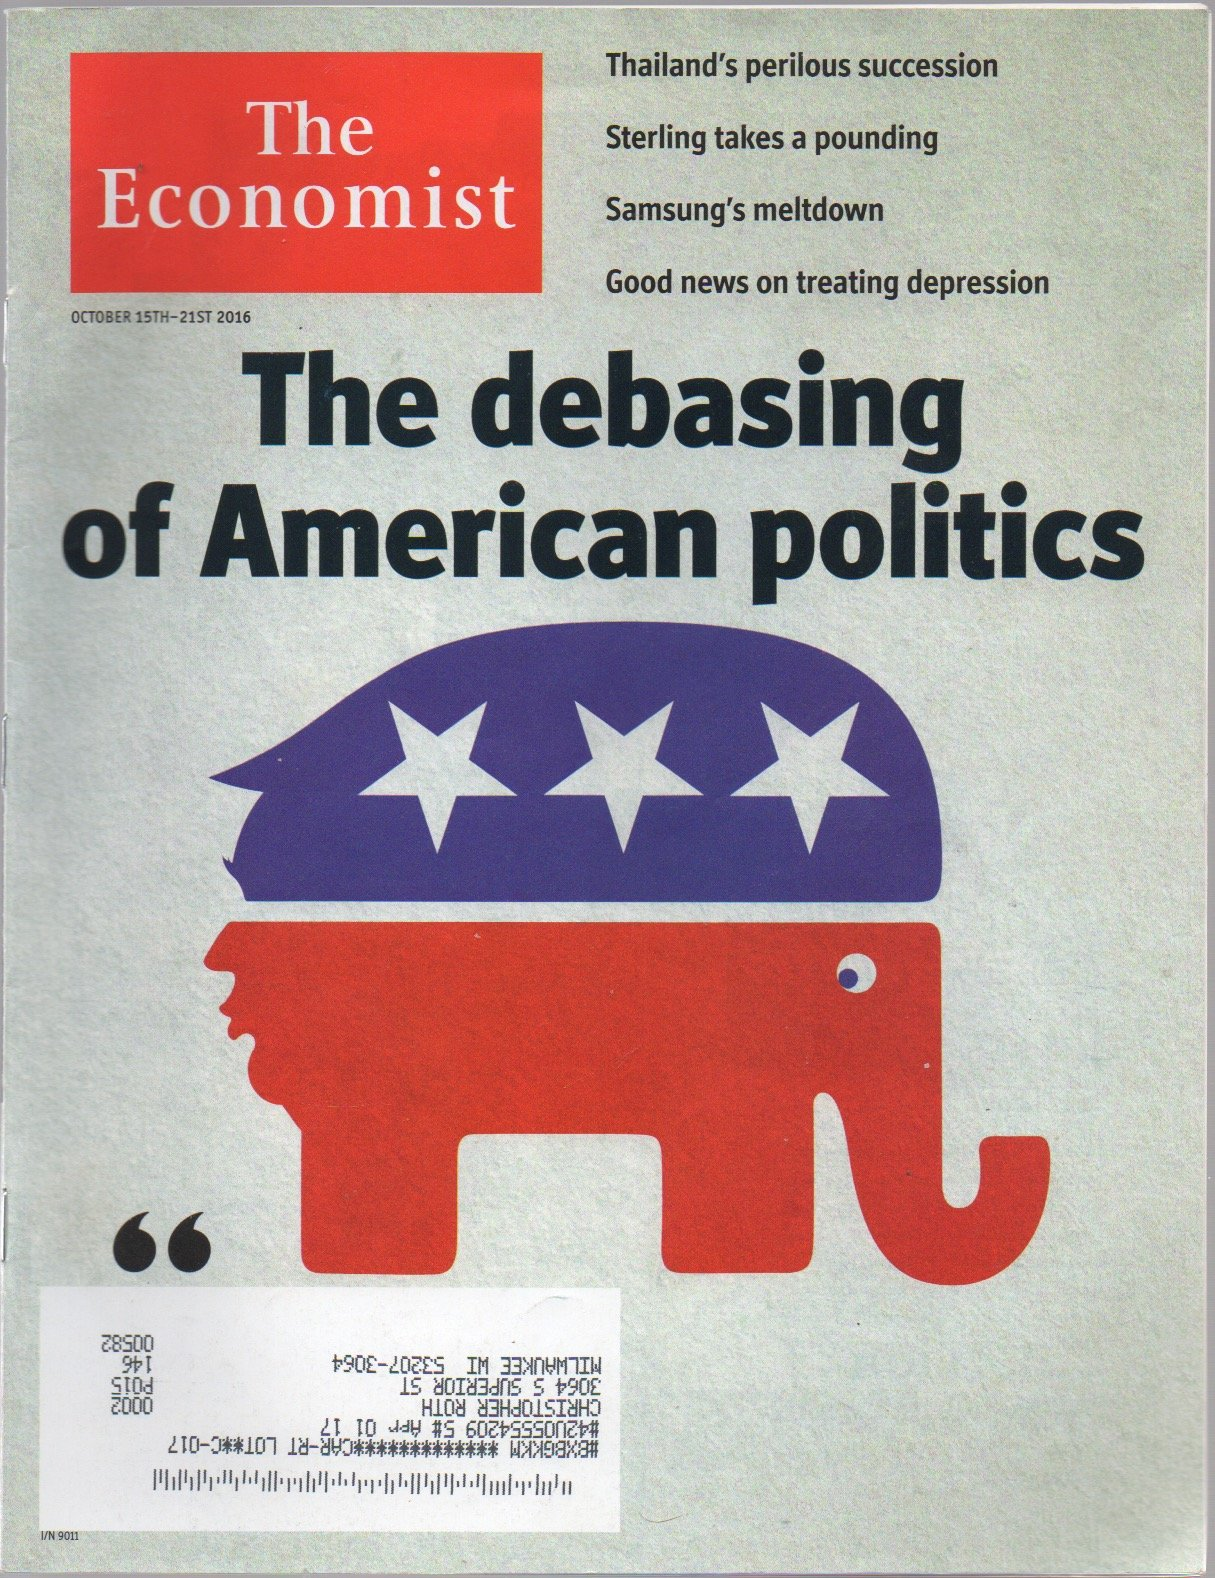 Download The Economist October 15th-21st 2016 PDF